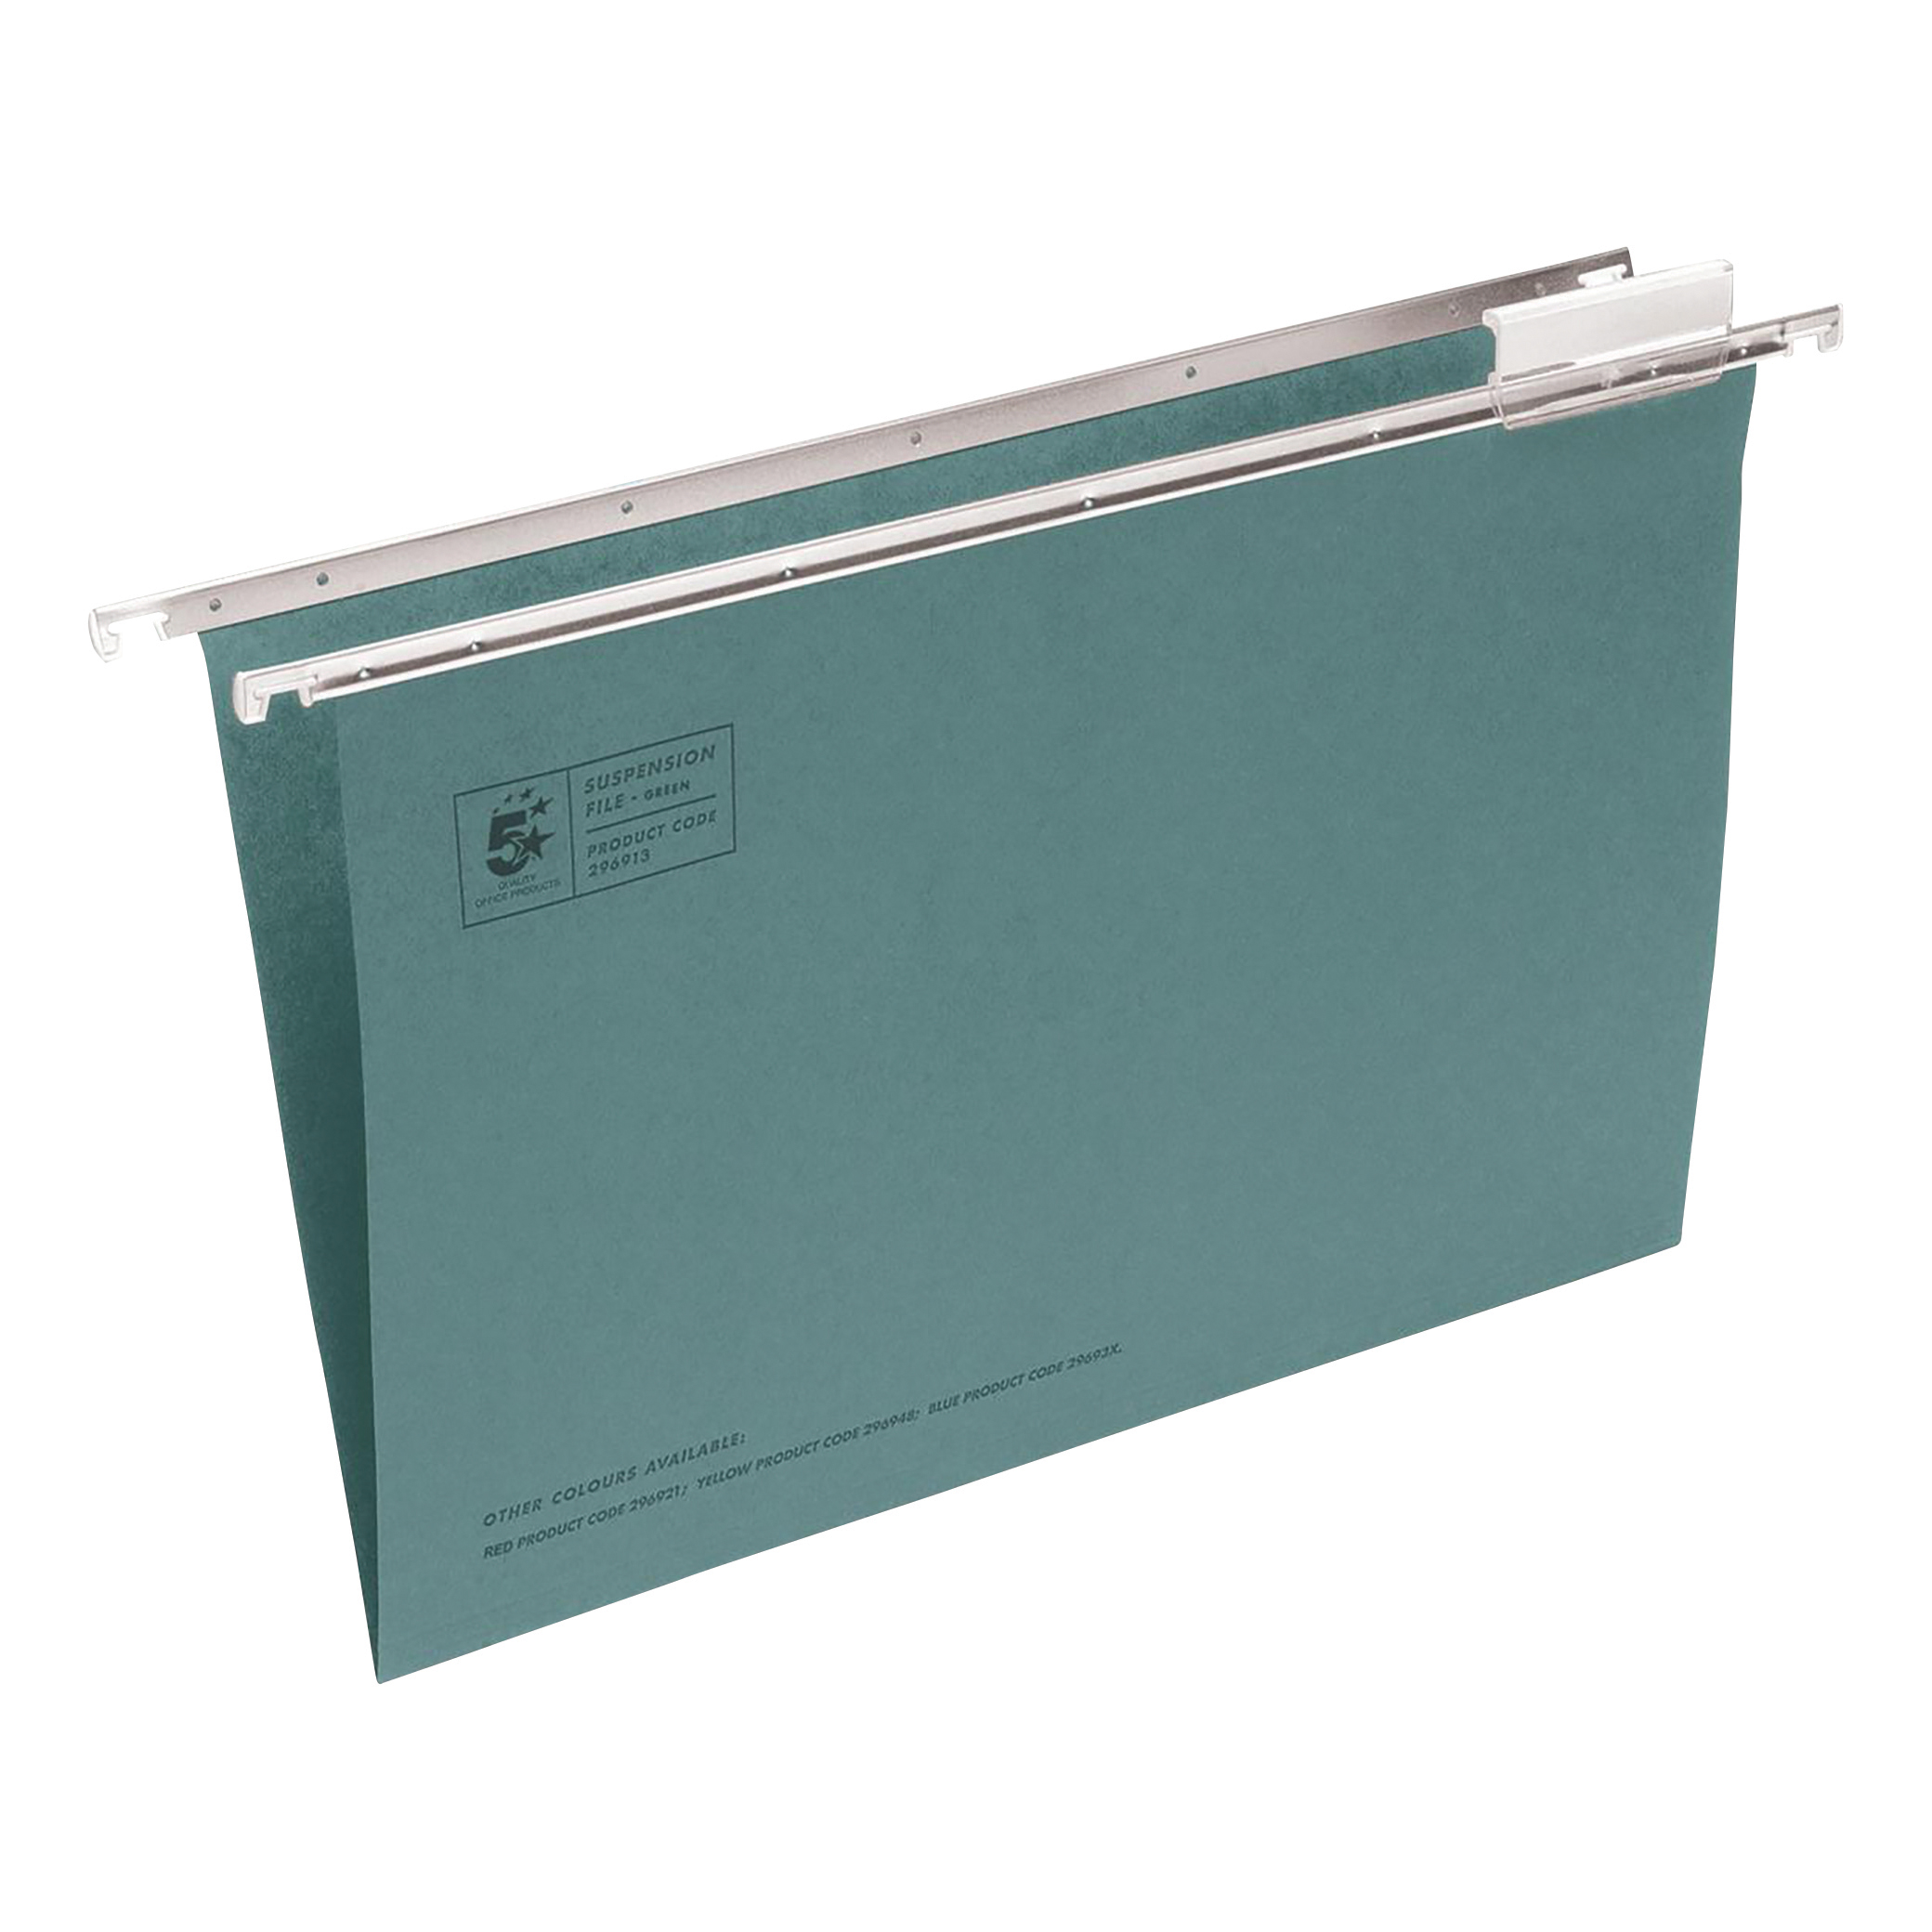 Suspension File 5 Star Office Suspension File with Tabs and Inserts Manilla 15mm V-base 180gsm Foolscap Green Pack 50